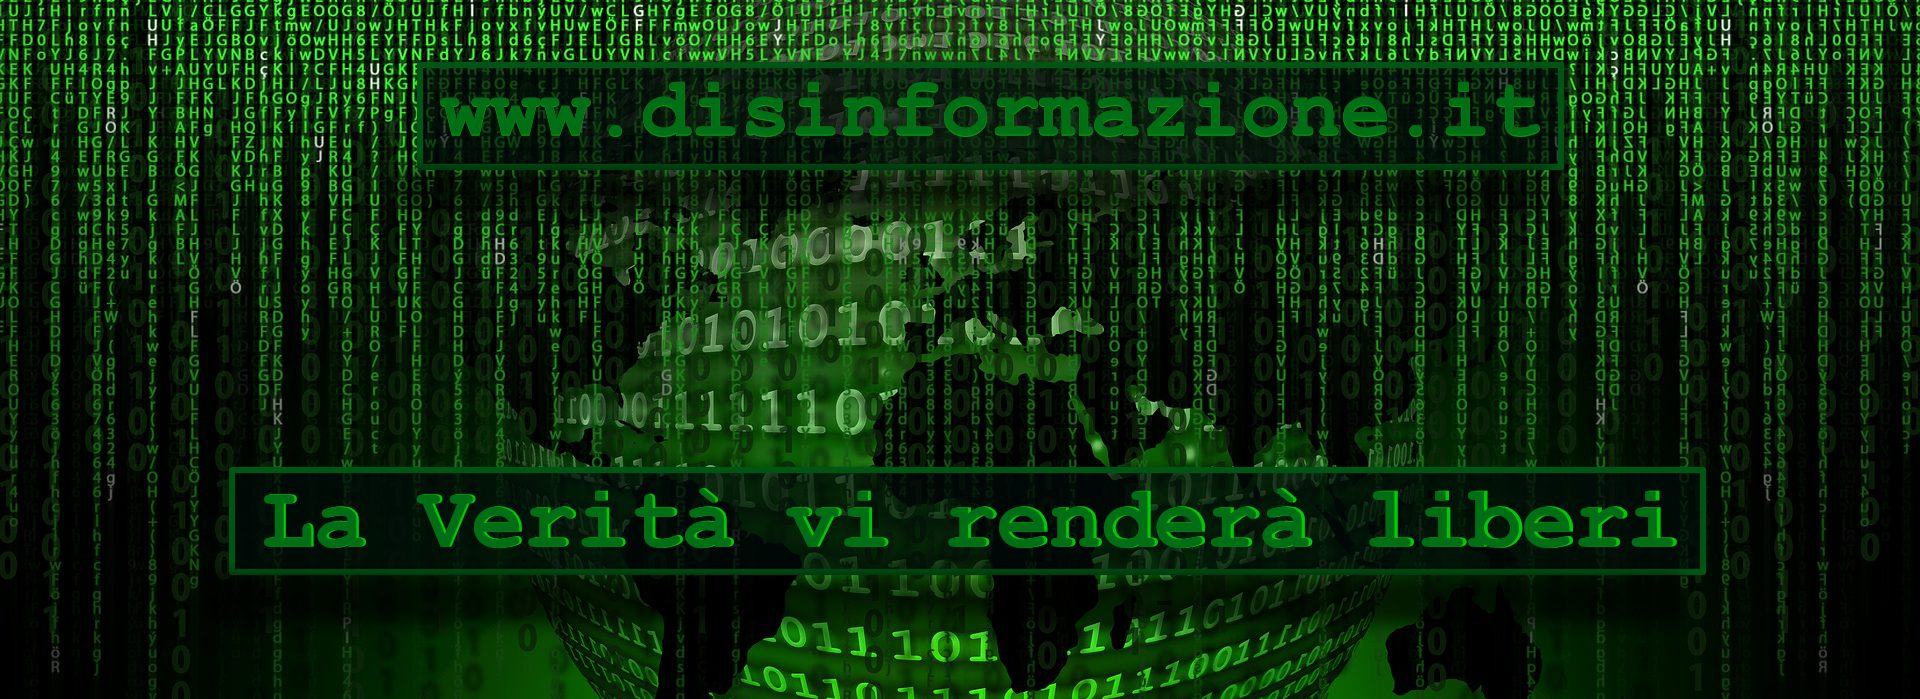 DISINFORMAZIONE.IT